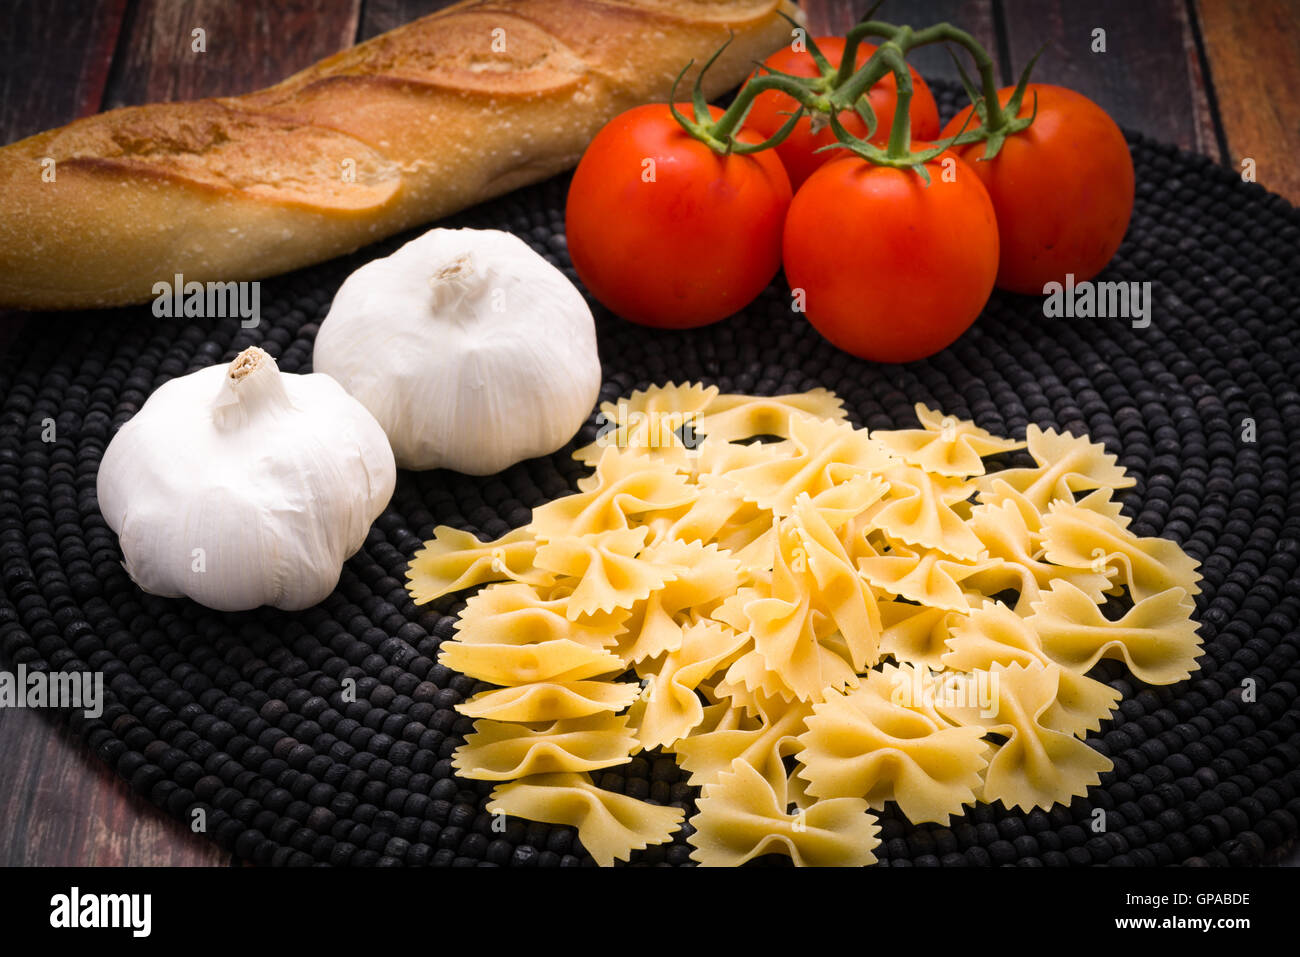 Bowtie pasta with vine ripened tomatoes and garlic - Stock Image